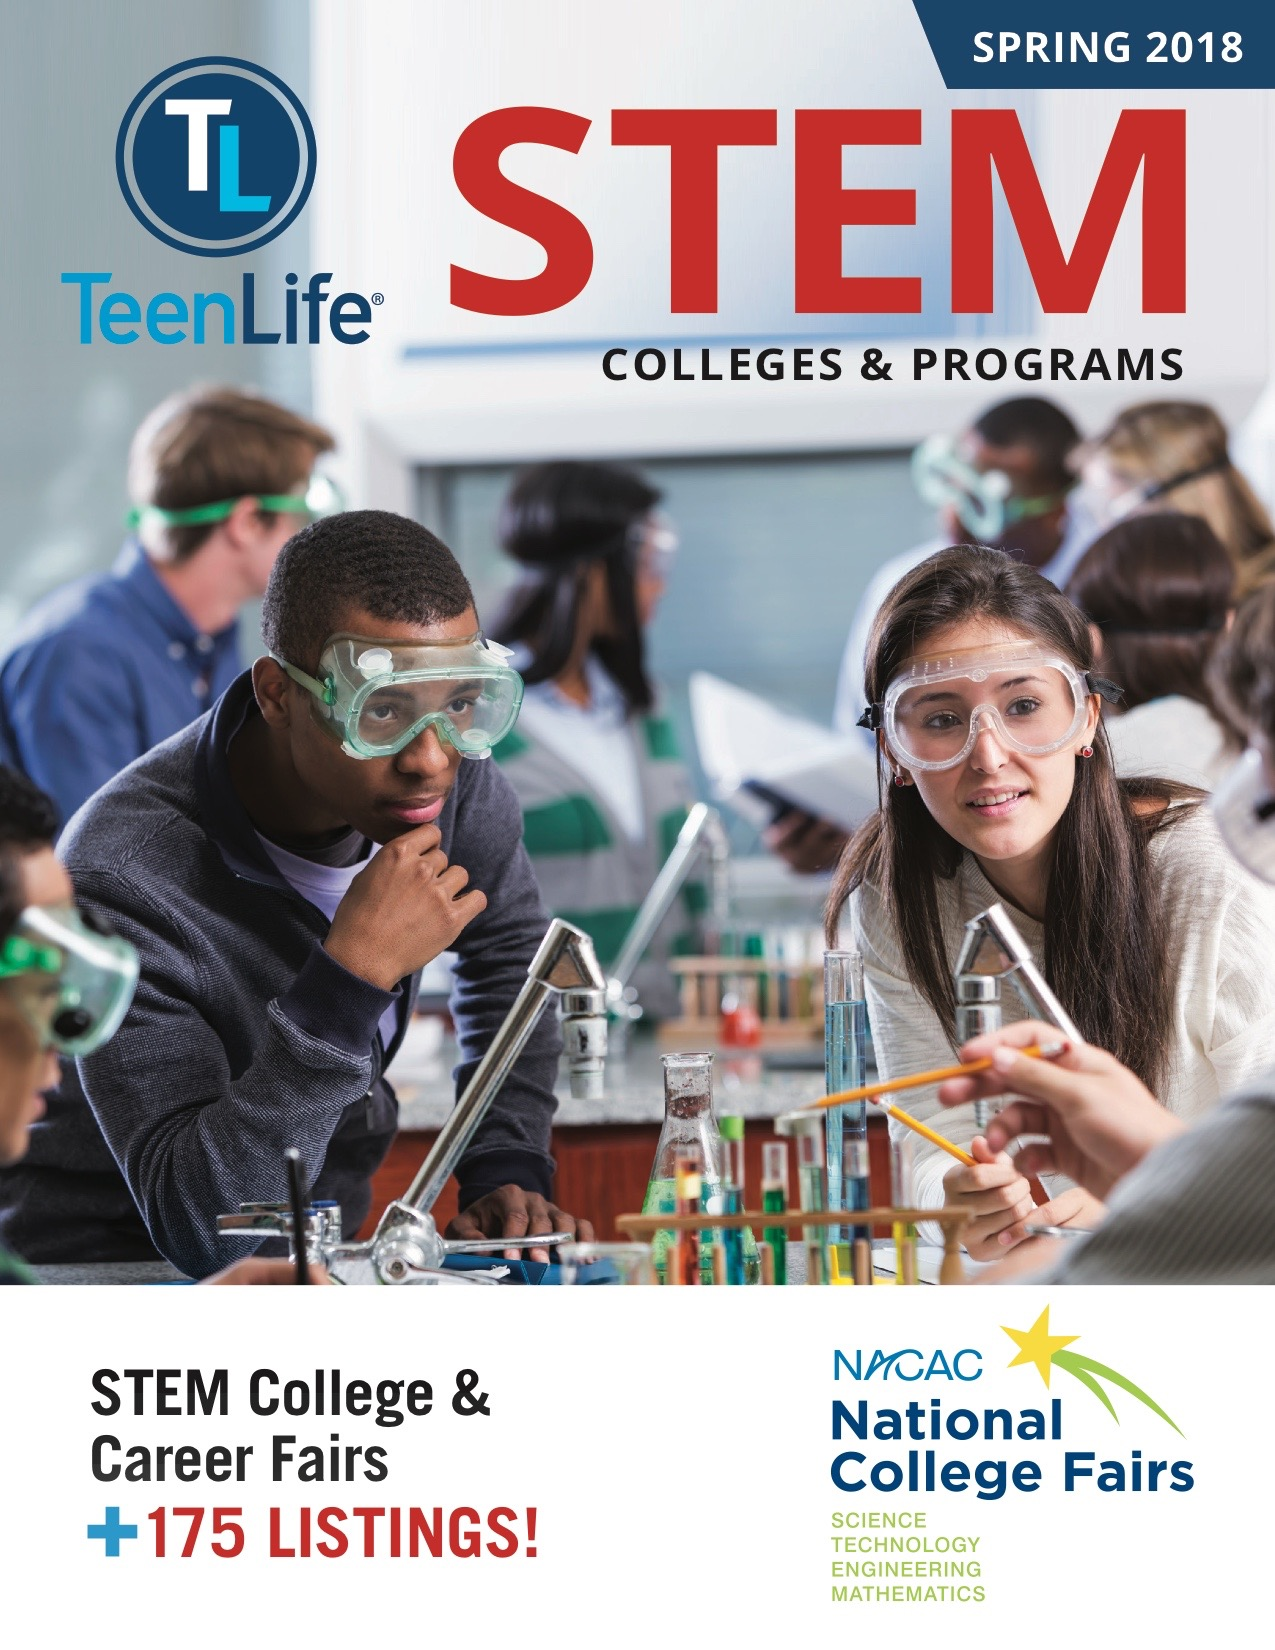 Guide to STEM Colleges & Programs - Spring 2018-TeenLife